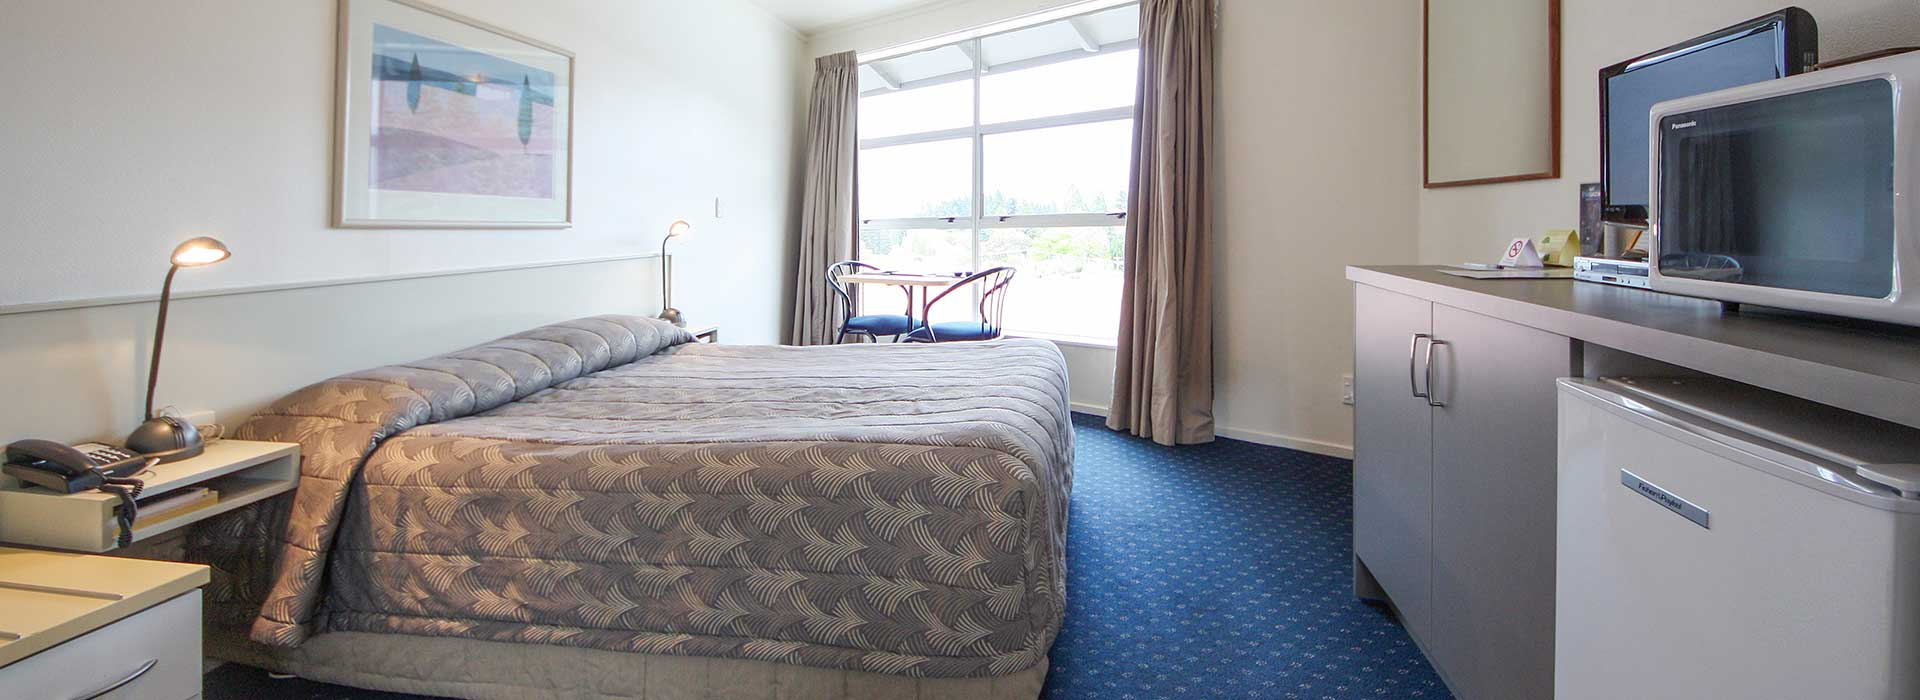 Studio Room (No Kitchen)